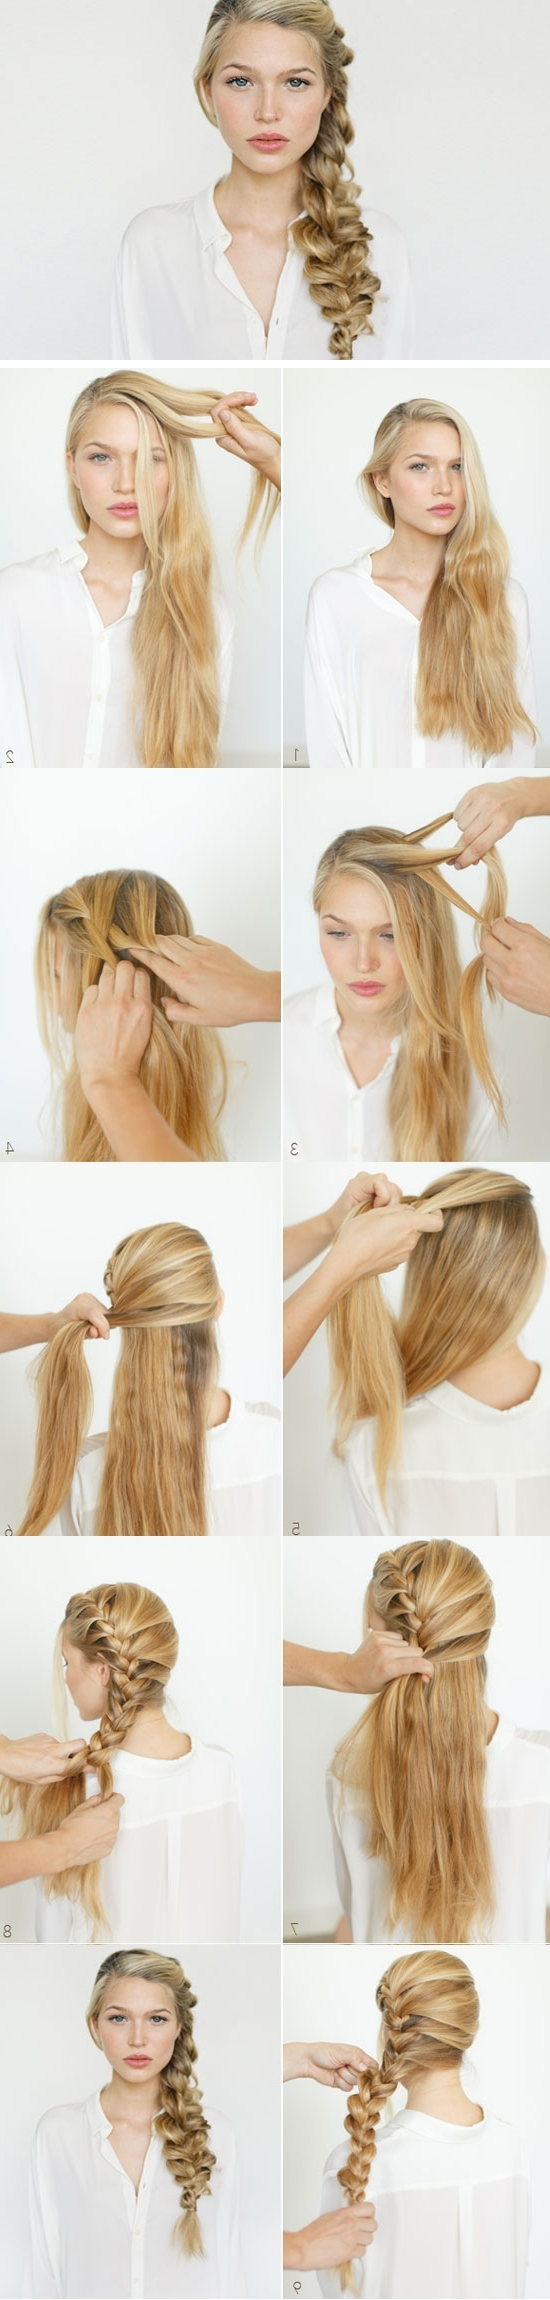 Favorite Diy Wedding Hairstyles With Regard To Easy Diy Wedding Hairstyles For Long Hair (View 8 of 15)